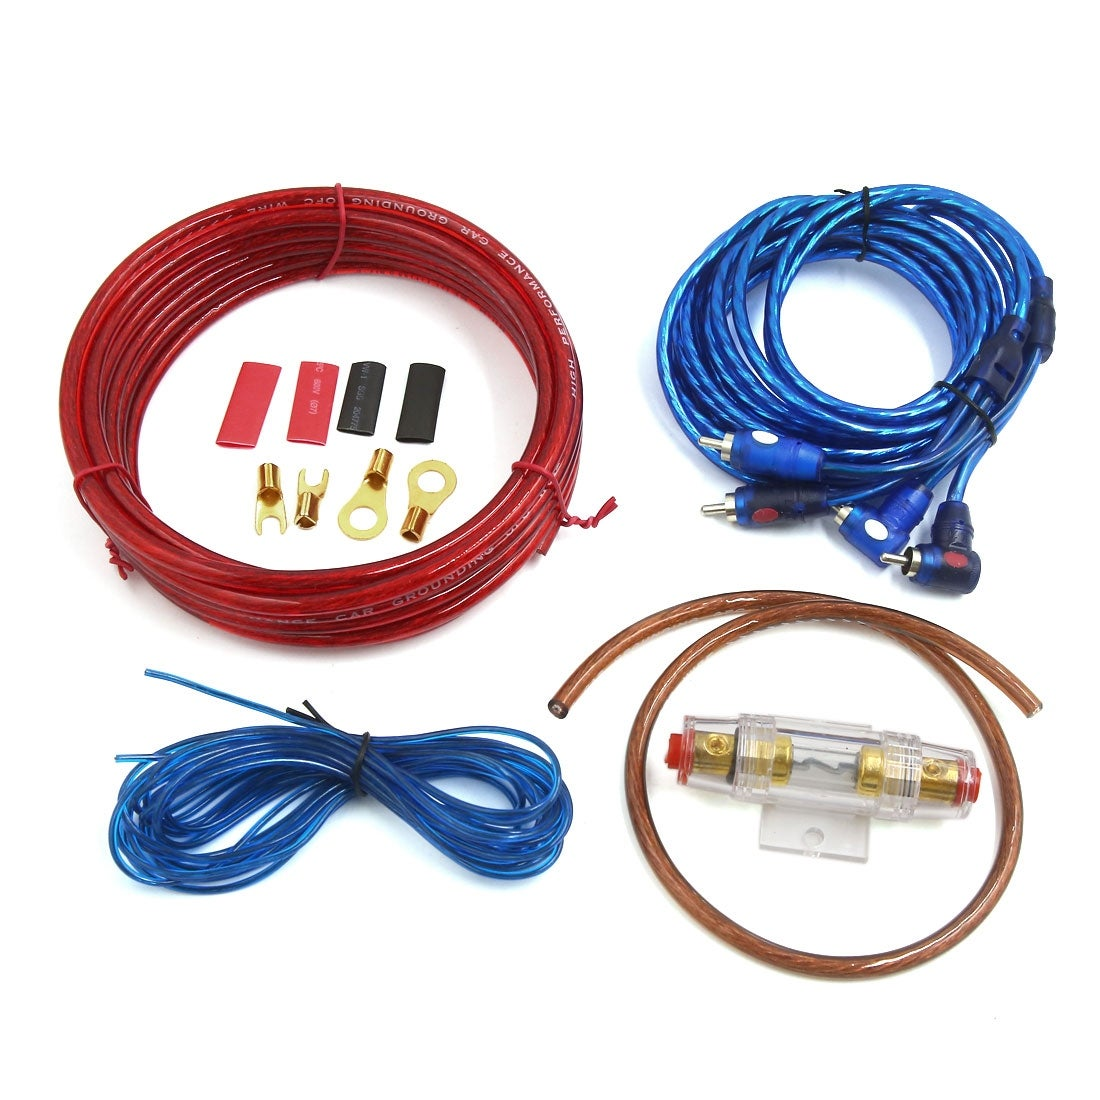 audio amplifier wiring shop 4 audio power cable amplifier wiring kits for universal car audio amplifier with wifi amplifier wiring kits for universal car